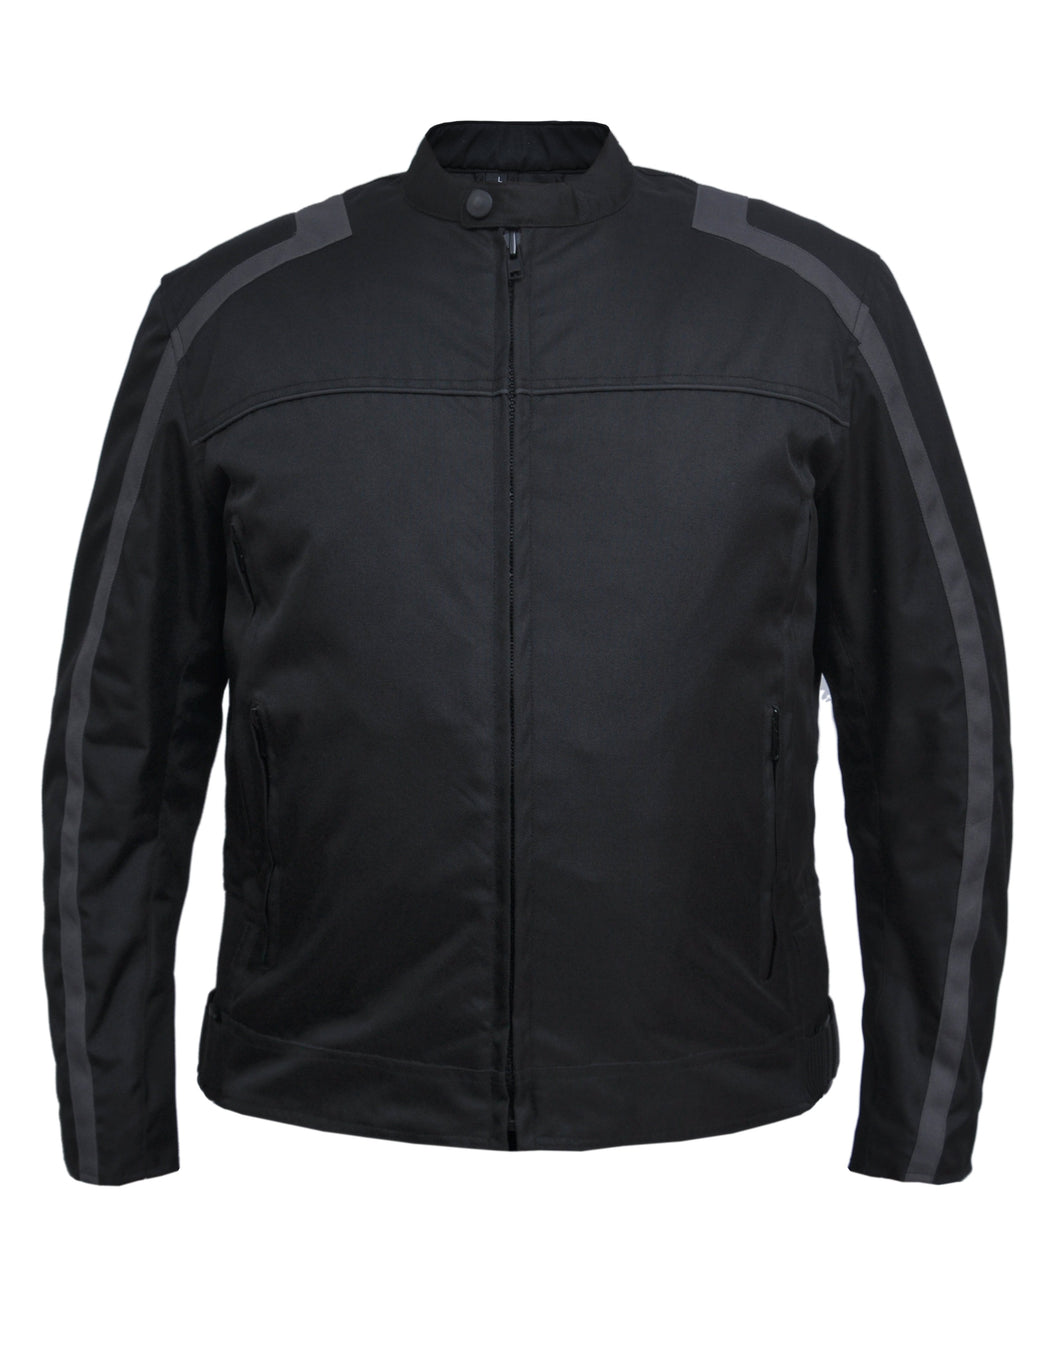 UNIK Men's Nylon Textile Jacket